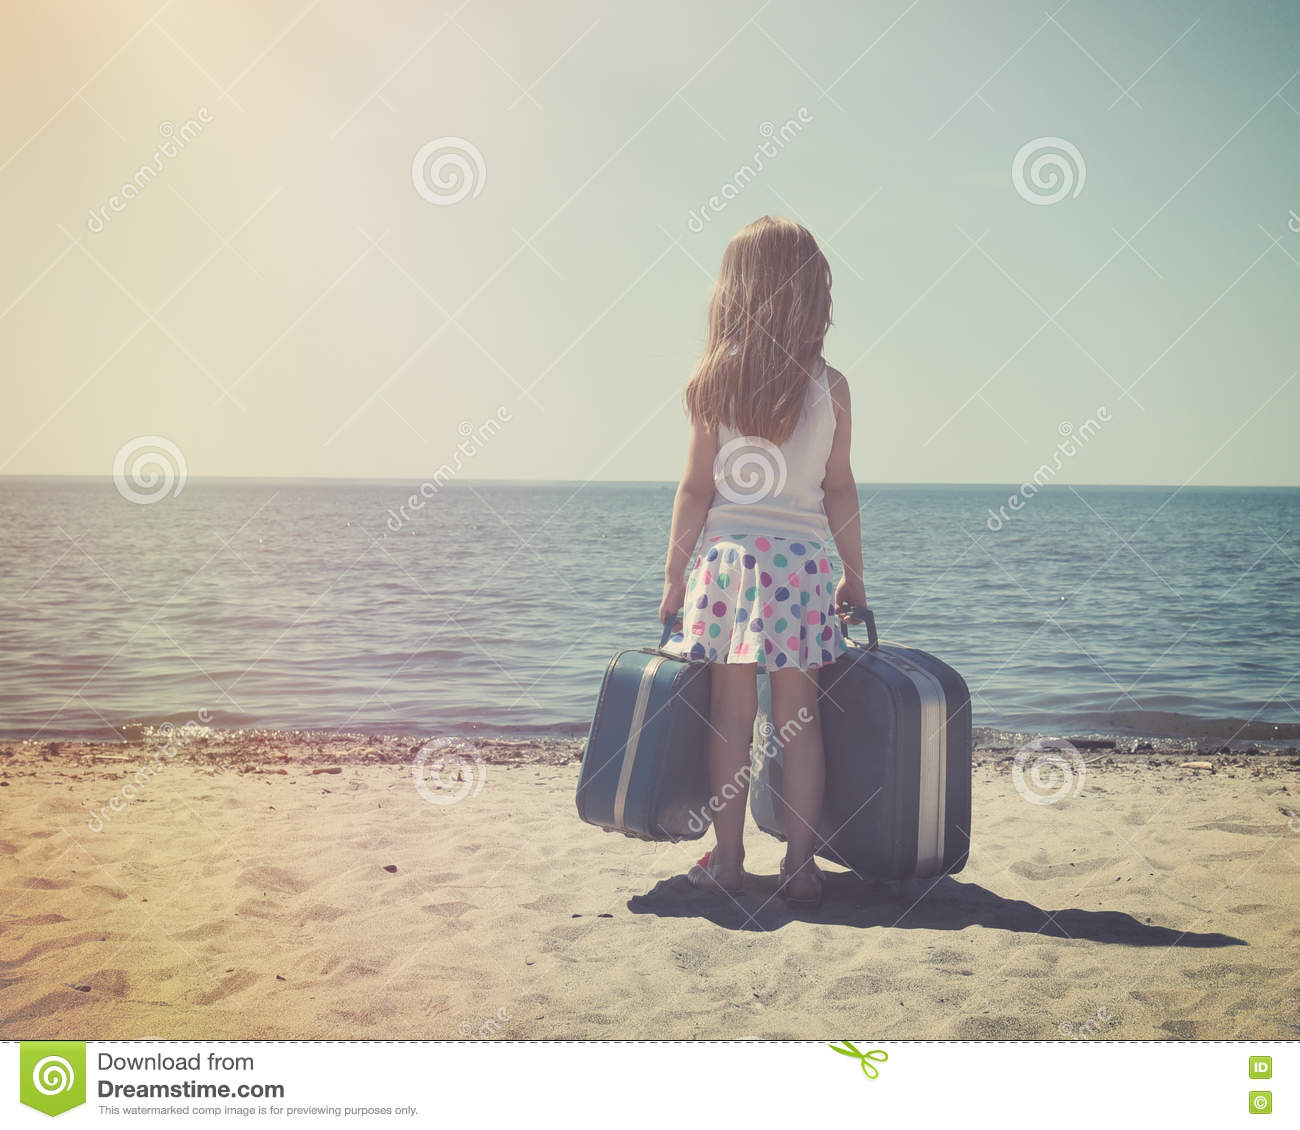 Vintage Child At Sunny Beach With Travel Suitcase Stock